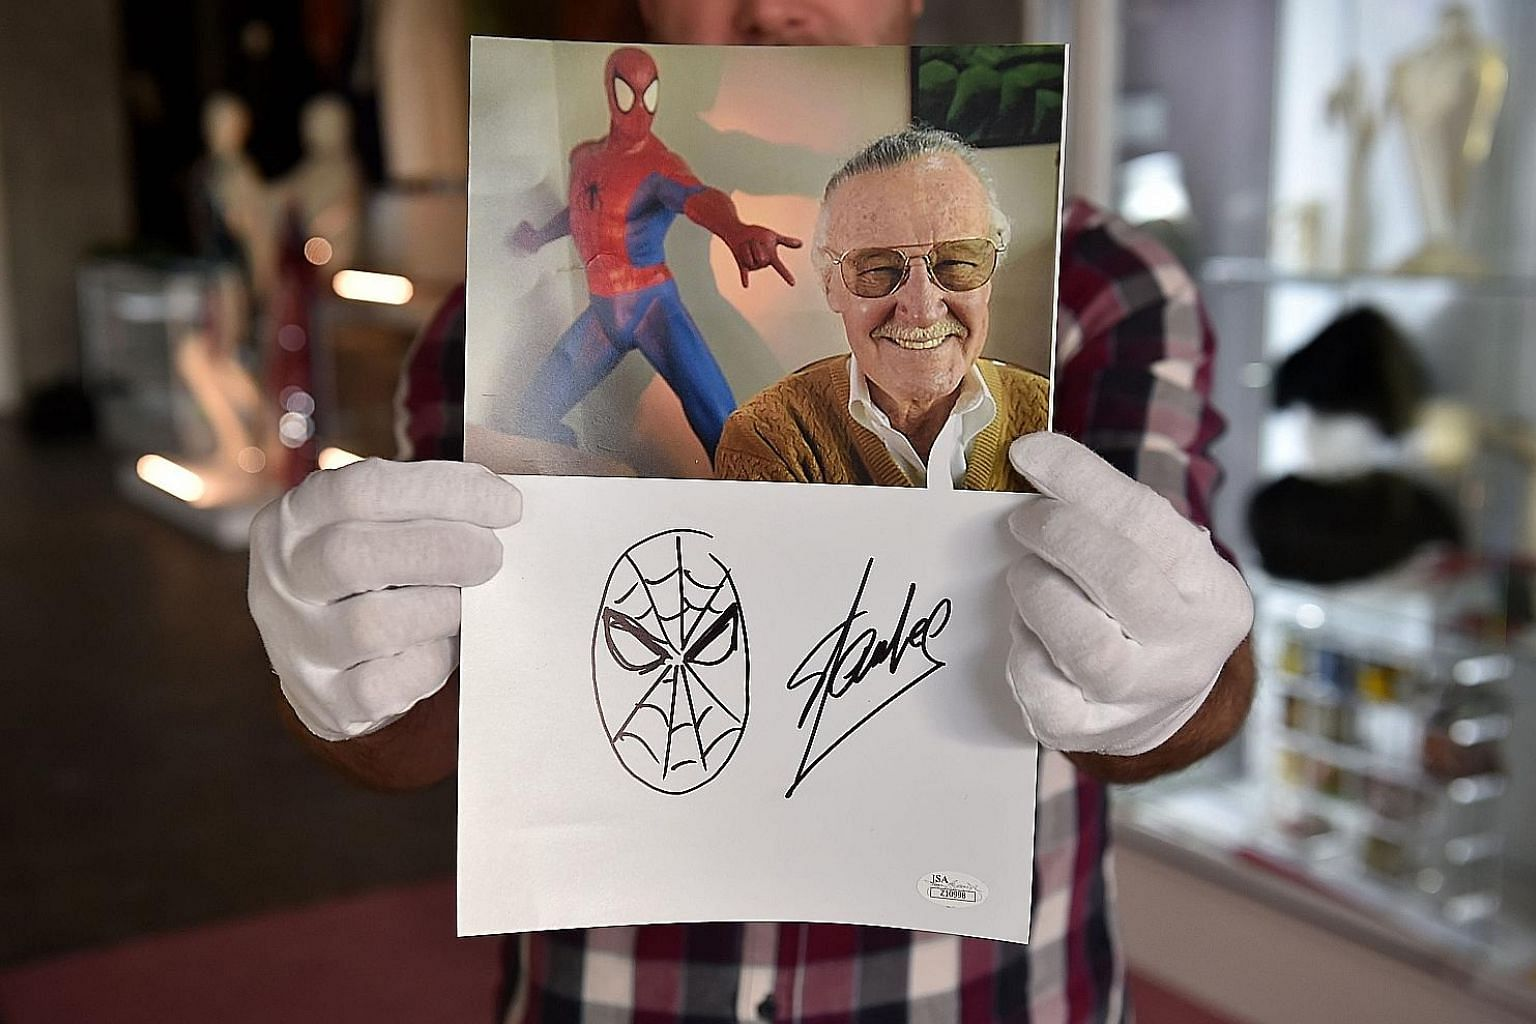 Many people, including this man dressed as Captain America, turned up at Stan Lee's Hollywood Walk of Fame star to pay tribute. An original sketch by Stan Lee of his most iconic creation, Spider-Man, beneath a portrait of Lee. The sketch is part of a